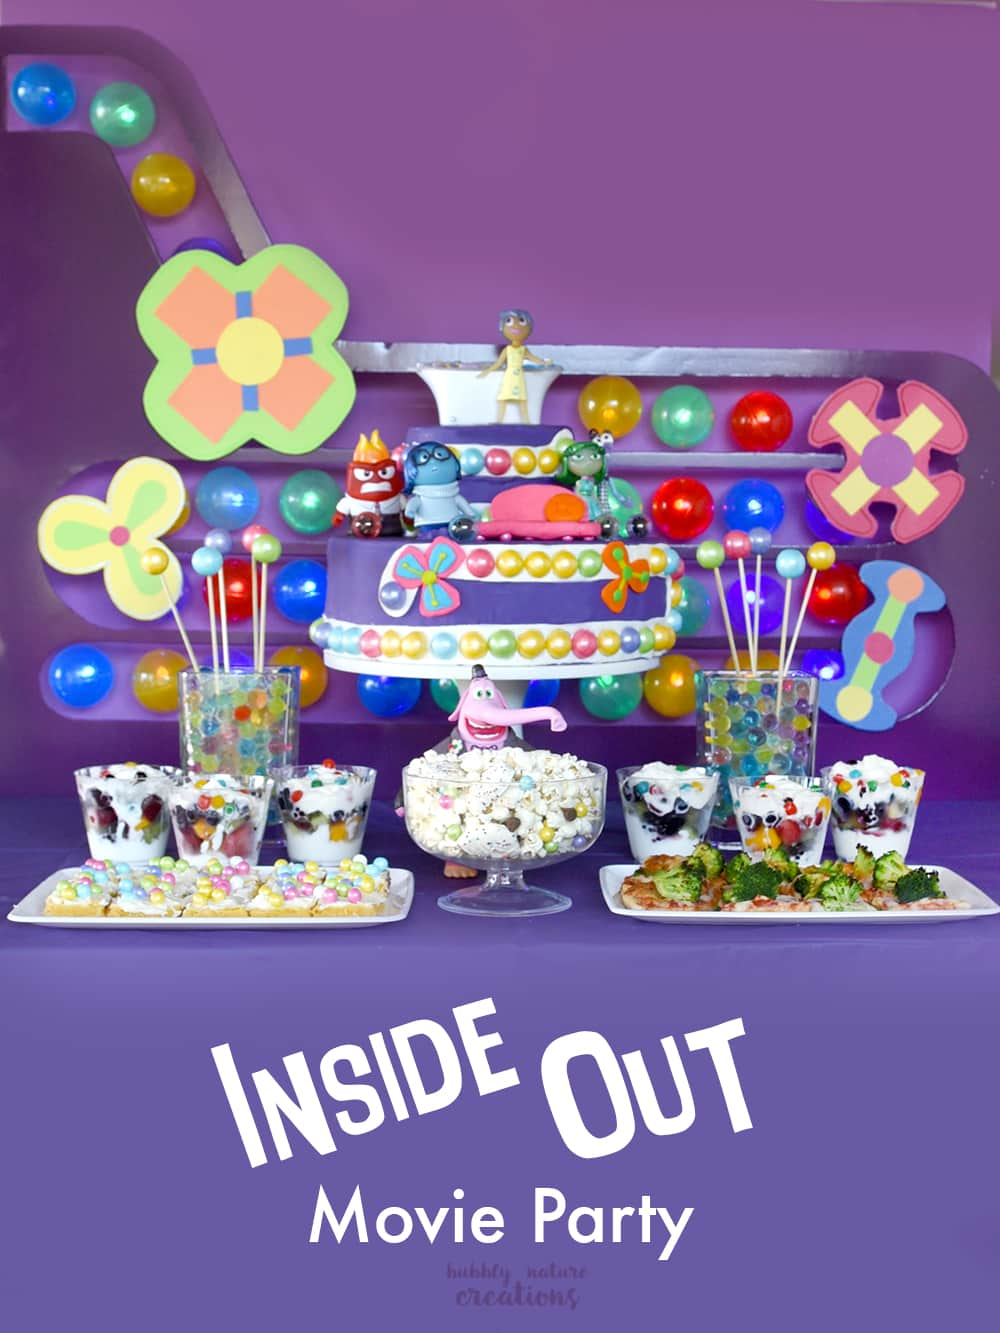 Inside Out Movie Party! The Ultimate ideas for throwing an epic Inside Out Movie Party!